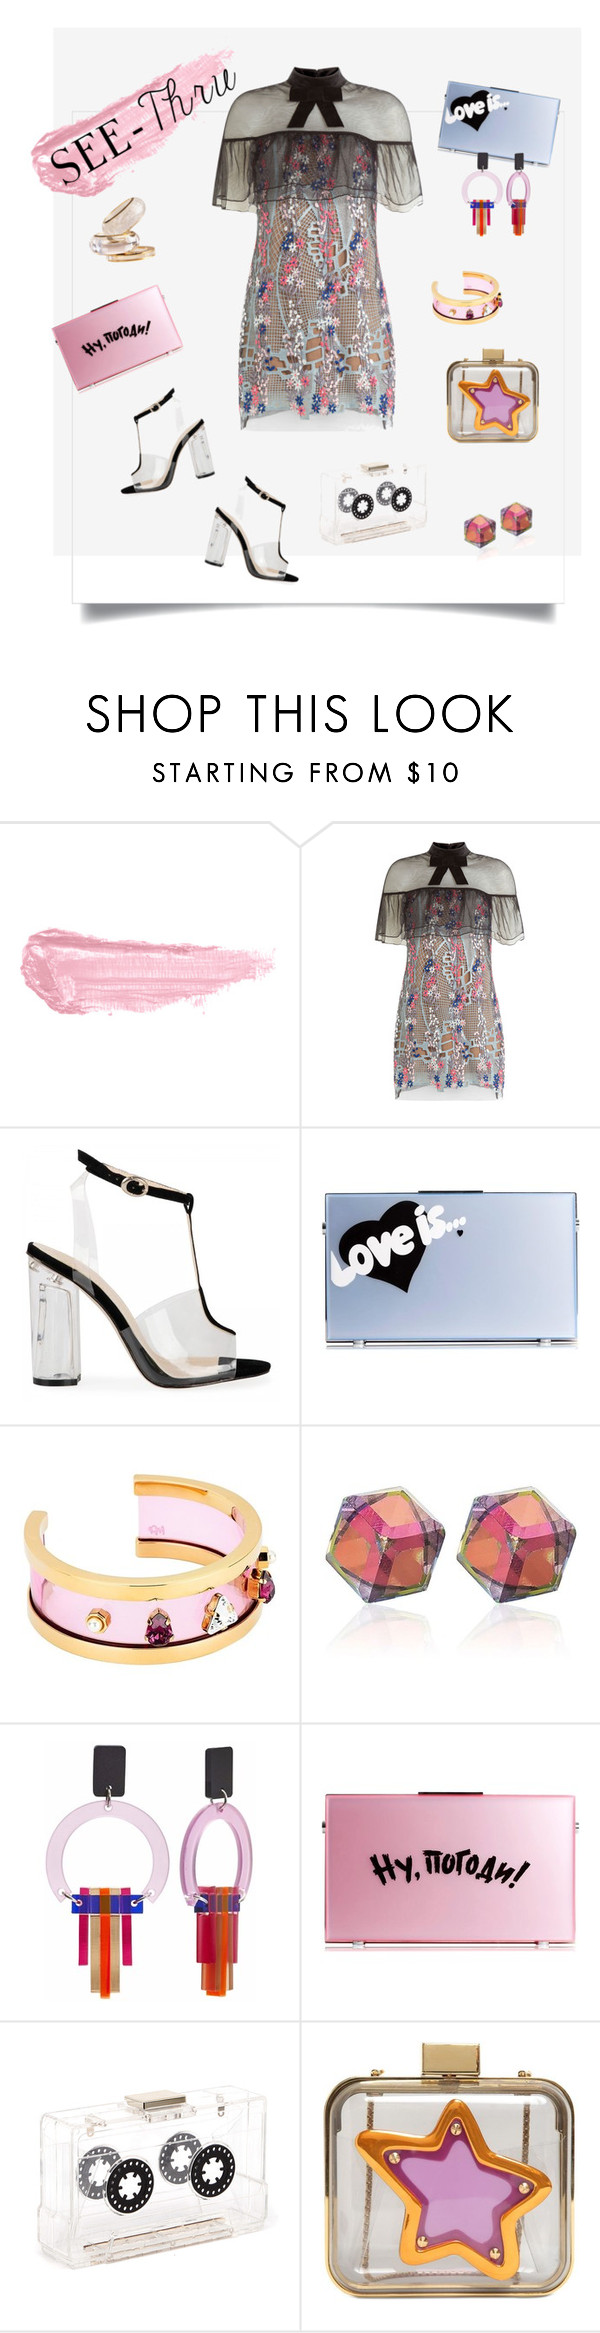 """Clear as....."" by ohnoflo on Polyvore featuring By Terry, self-portrait, Eshvi, Maria Francesca Pepe, River Island, Mawi, clear and Seethru"